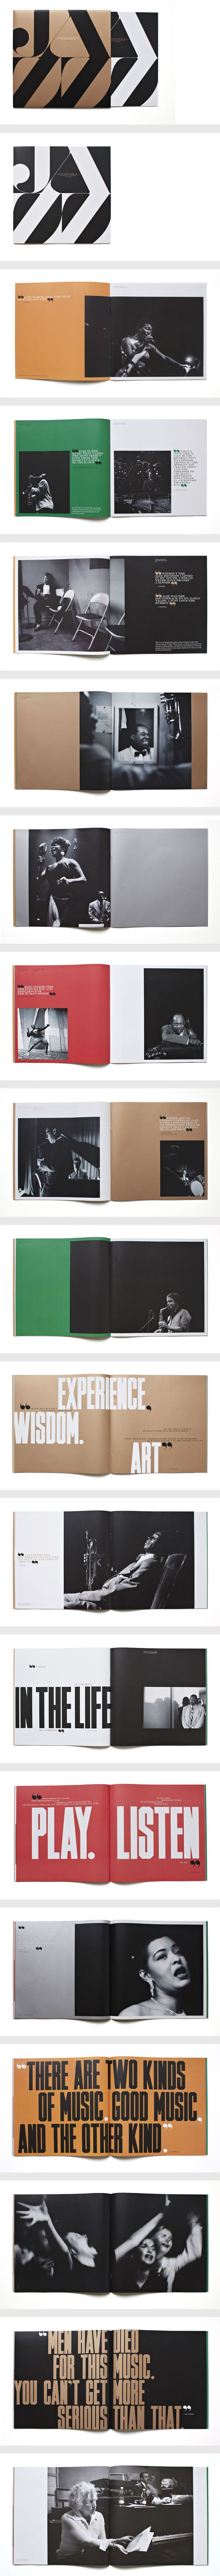 "Jazz FM Booklet by Matt Willey ... all of the ""white space"" in this book ... I love it!"